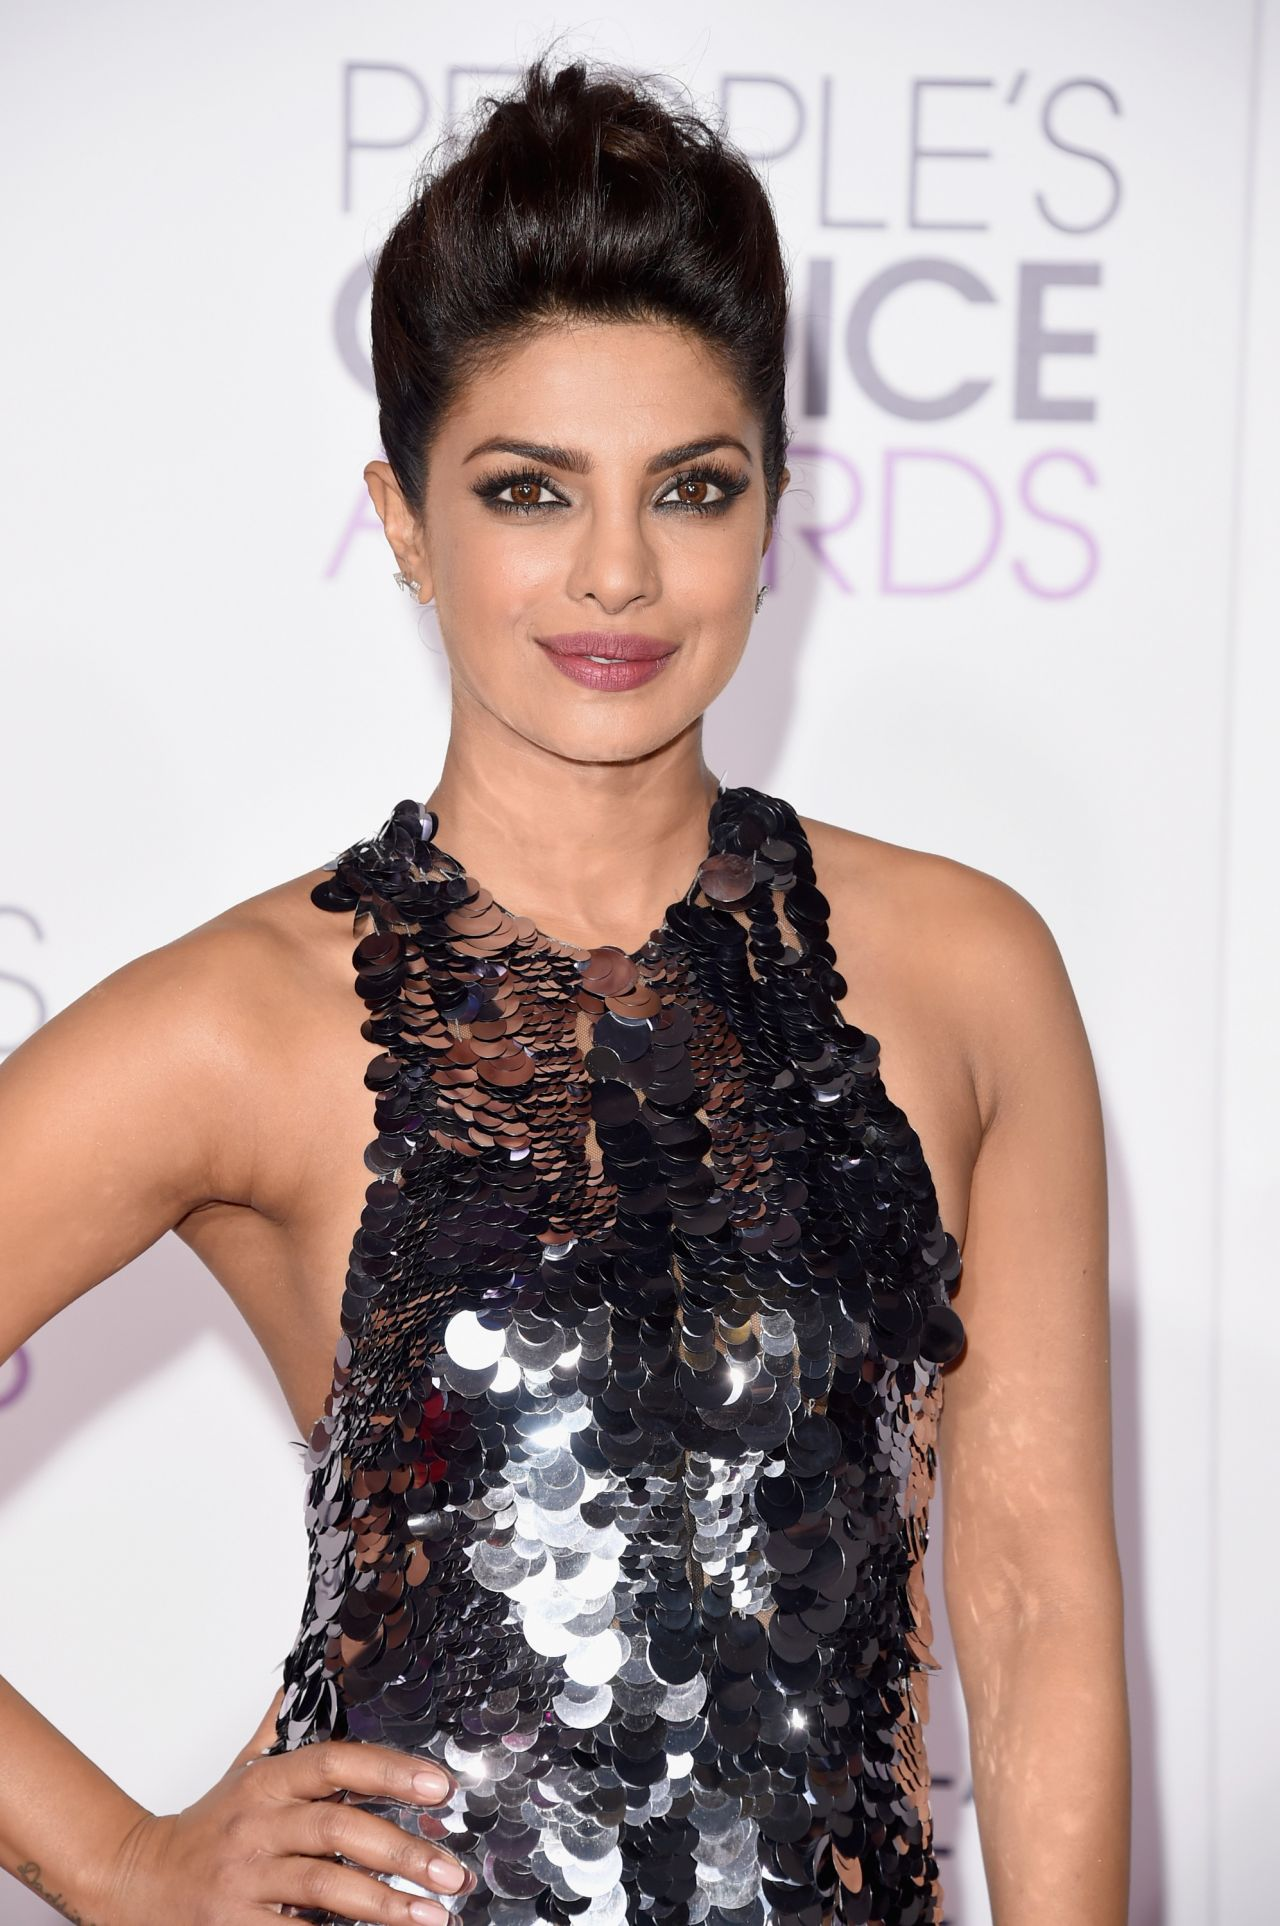 priyanka-chopra-2016-people-s-choice-awards-in-microsoft-theater-in-los-angeles-4